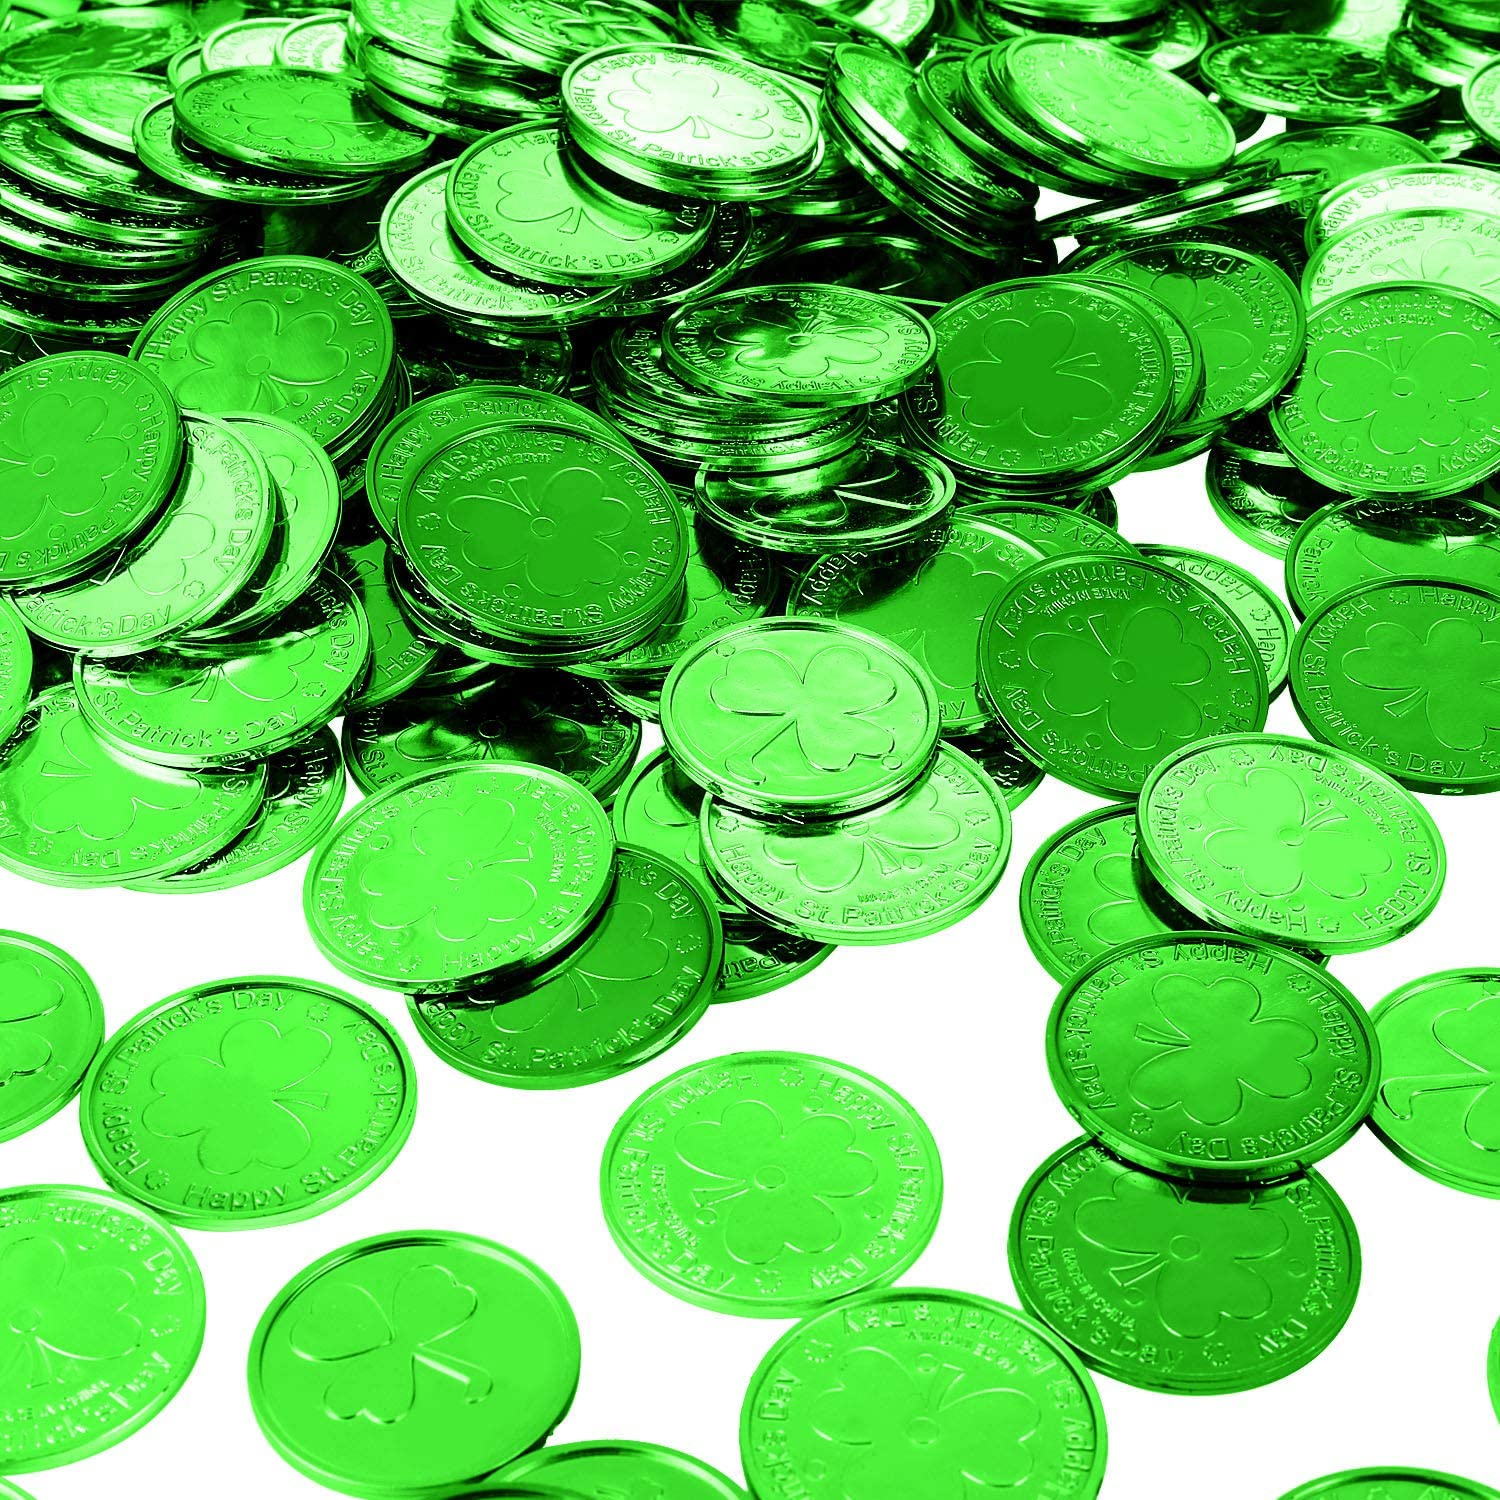 Patricks Day Shamrock Coins Plastic Lucky Clover Coins Shamrock Luck Coins Table Sprinkles for Party Supplies 240 Pieces St Green